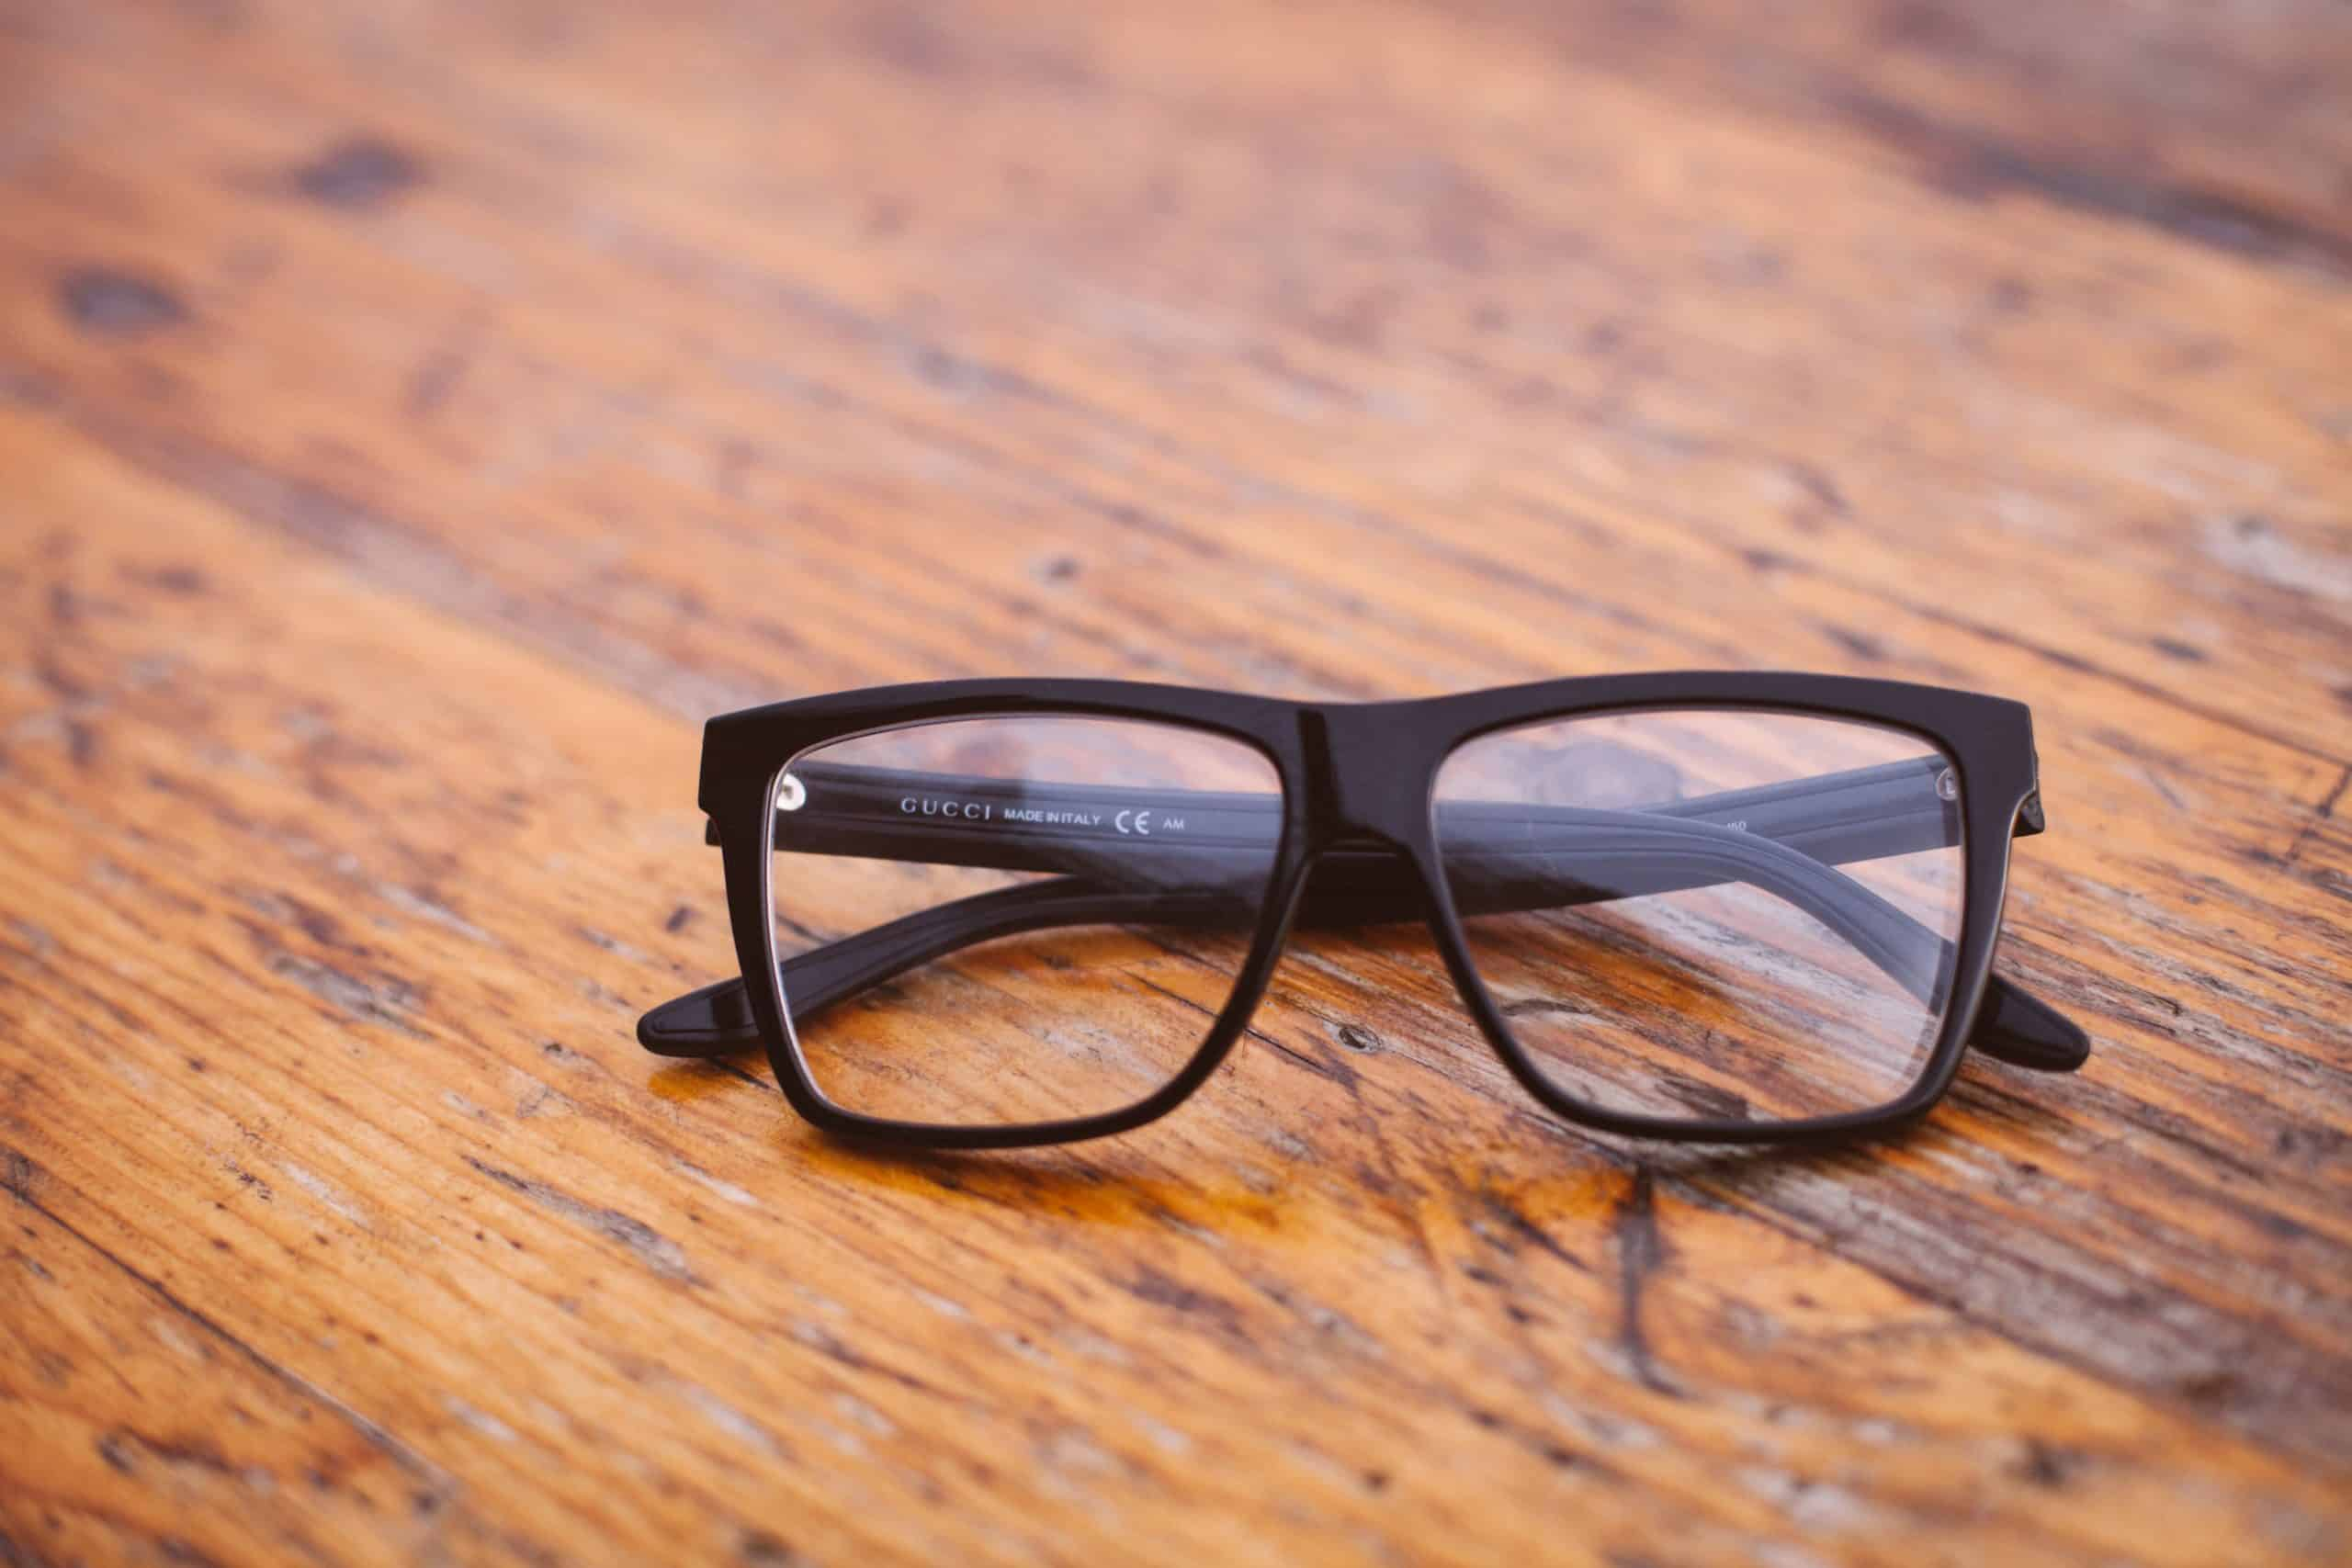 Should Eye Tests be a School Requirement?